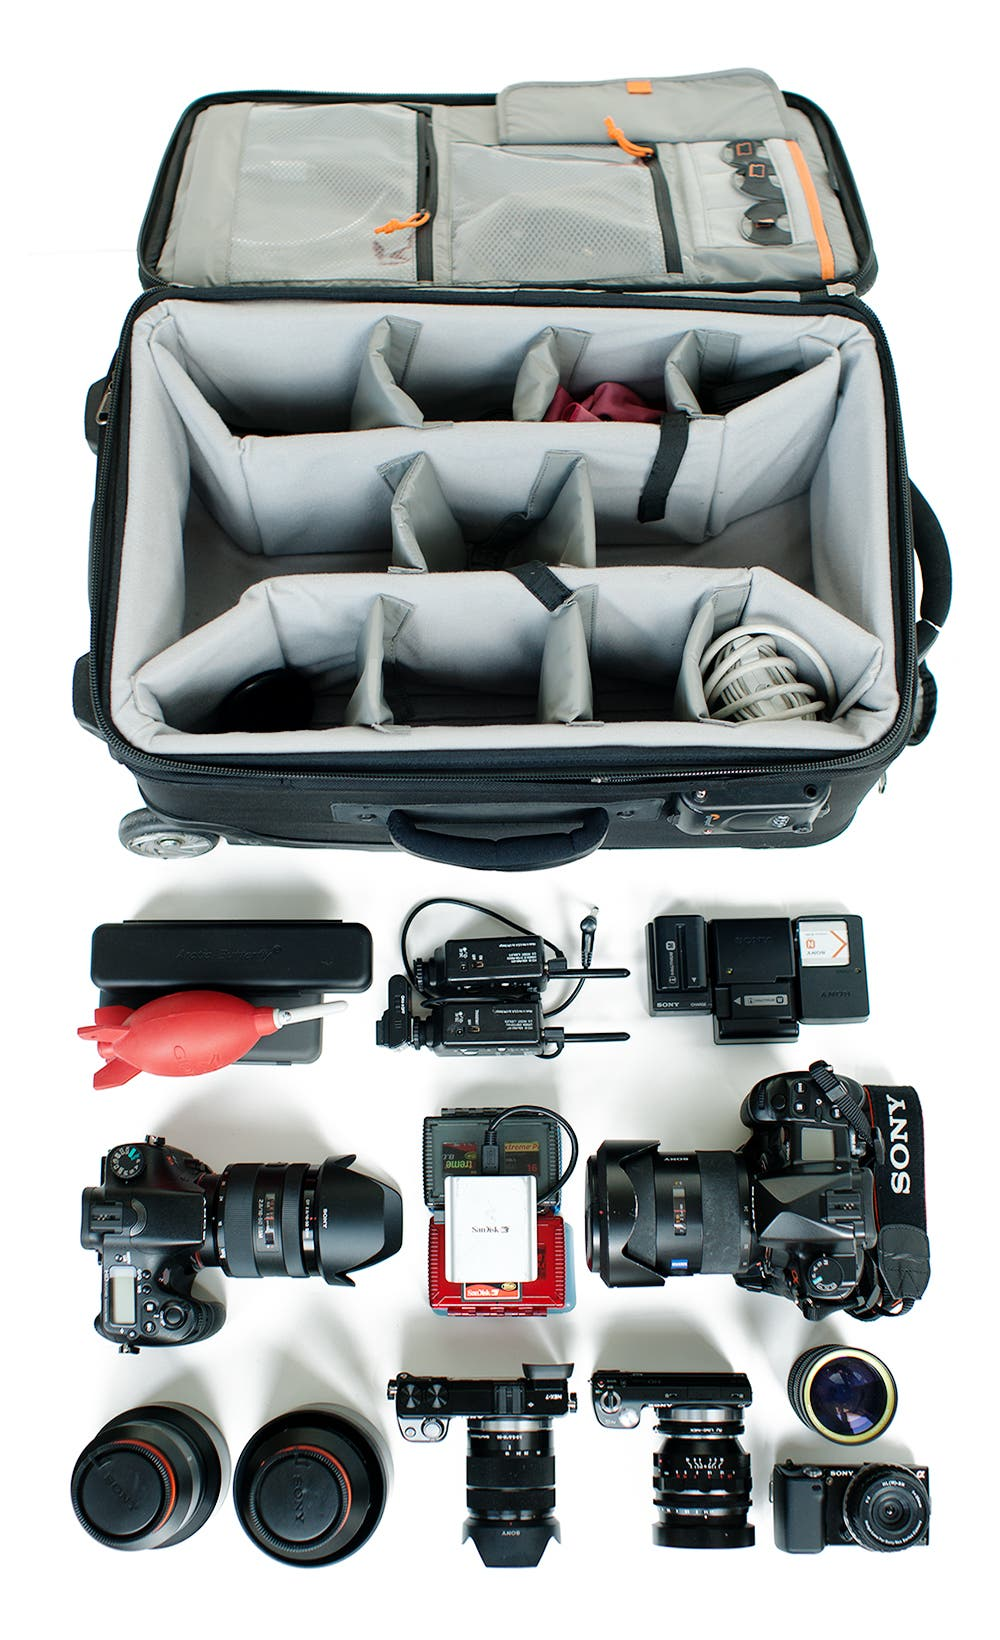 What's In the Bag? Sony Artisan Brian Smith